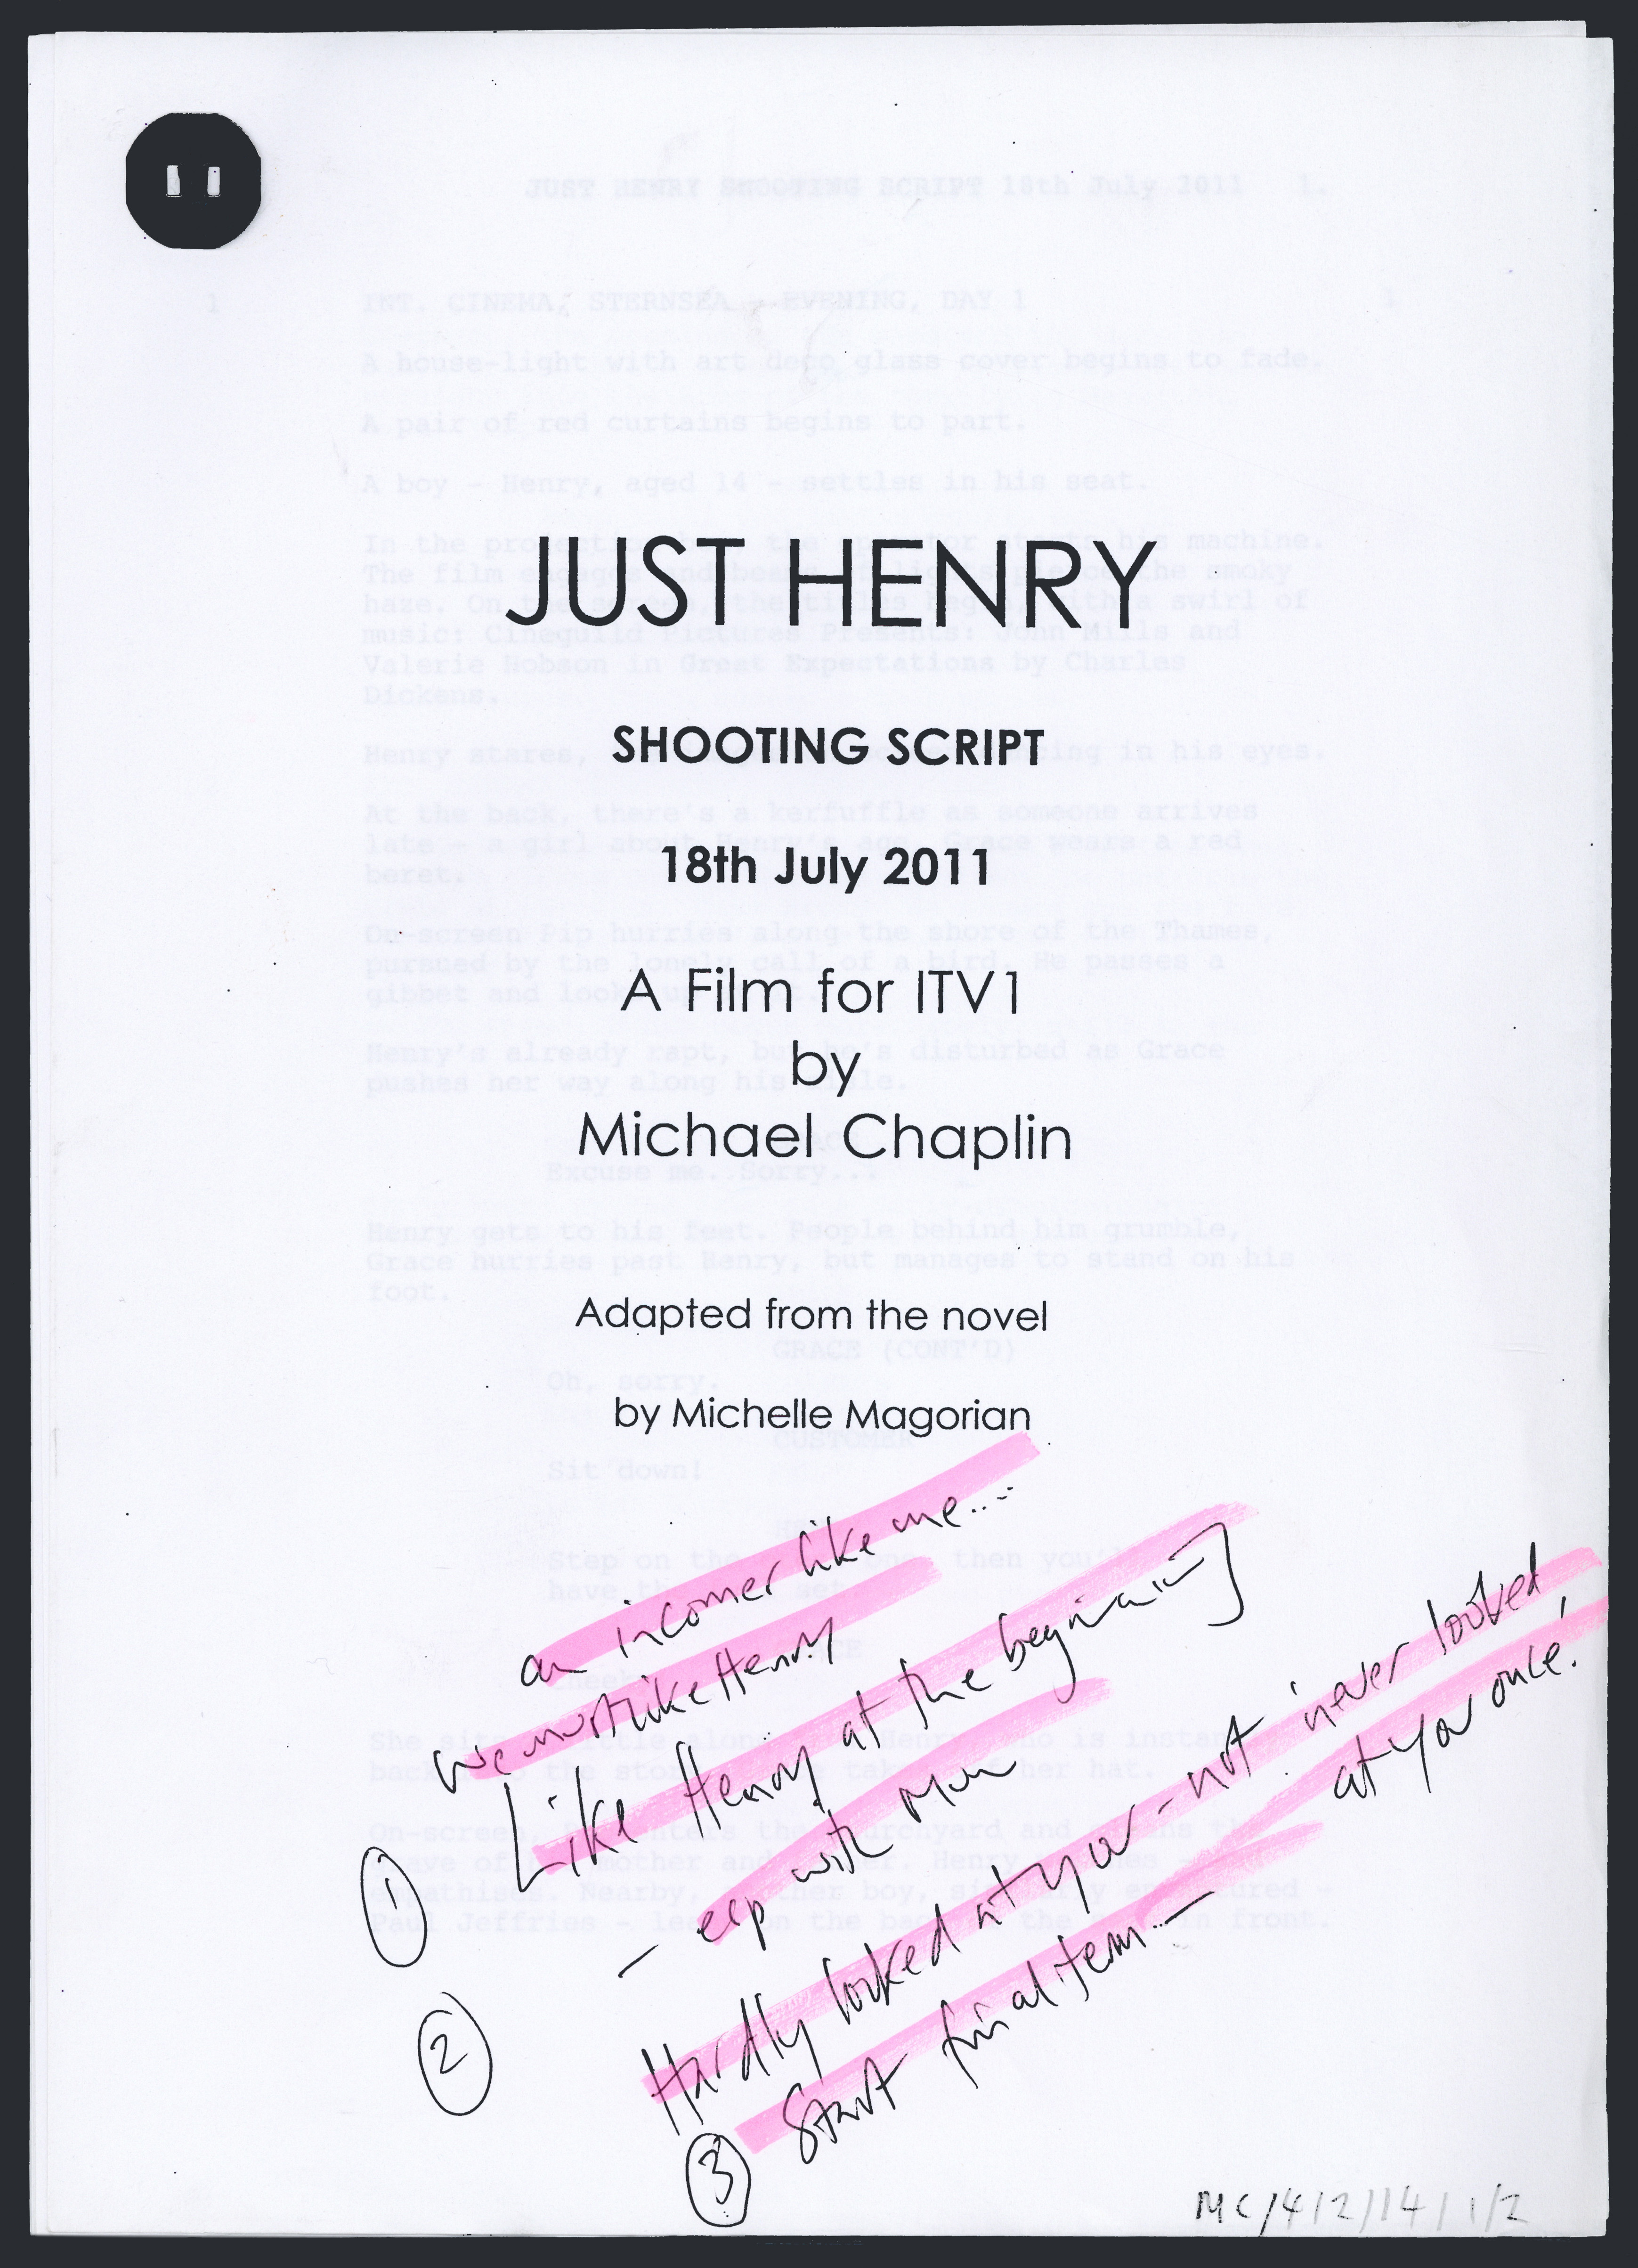 Front page of a shooting script for ITV's 2011 Christmas film for 'Just Henry'